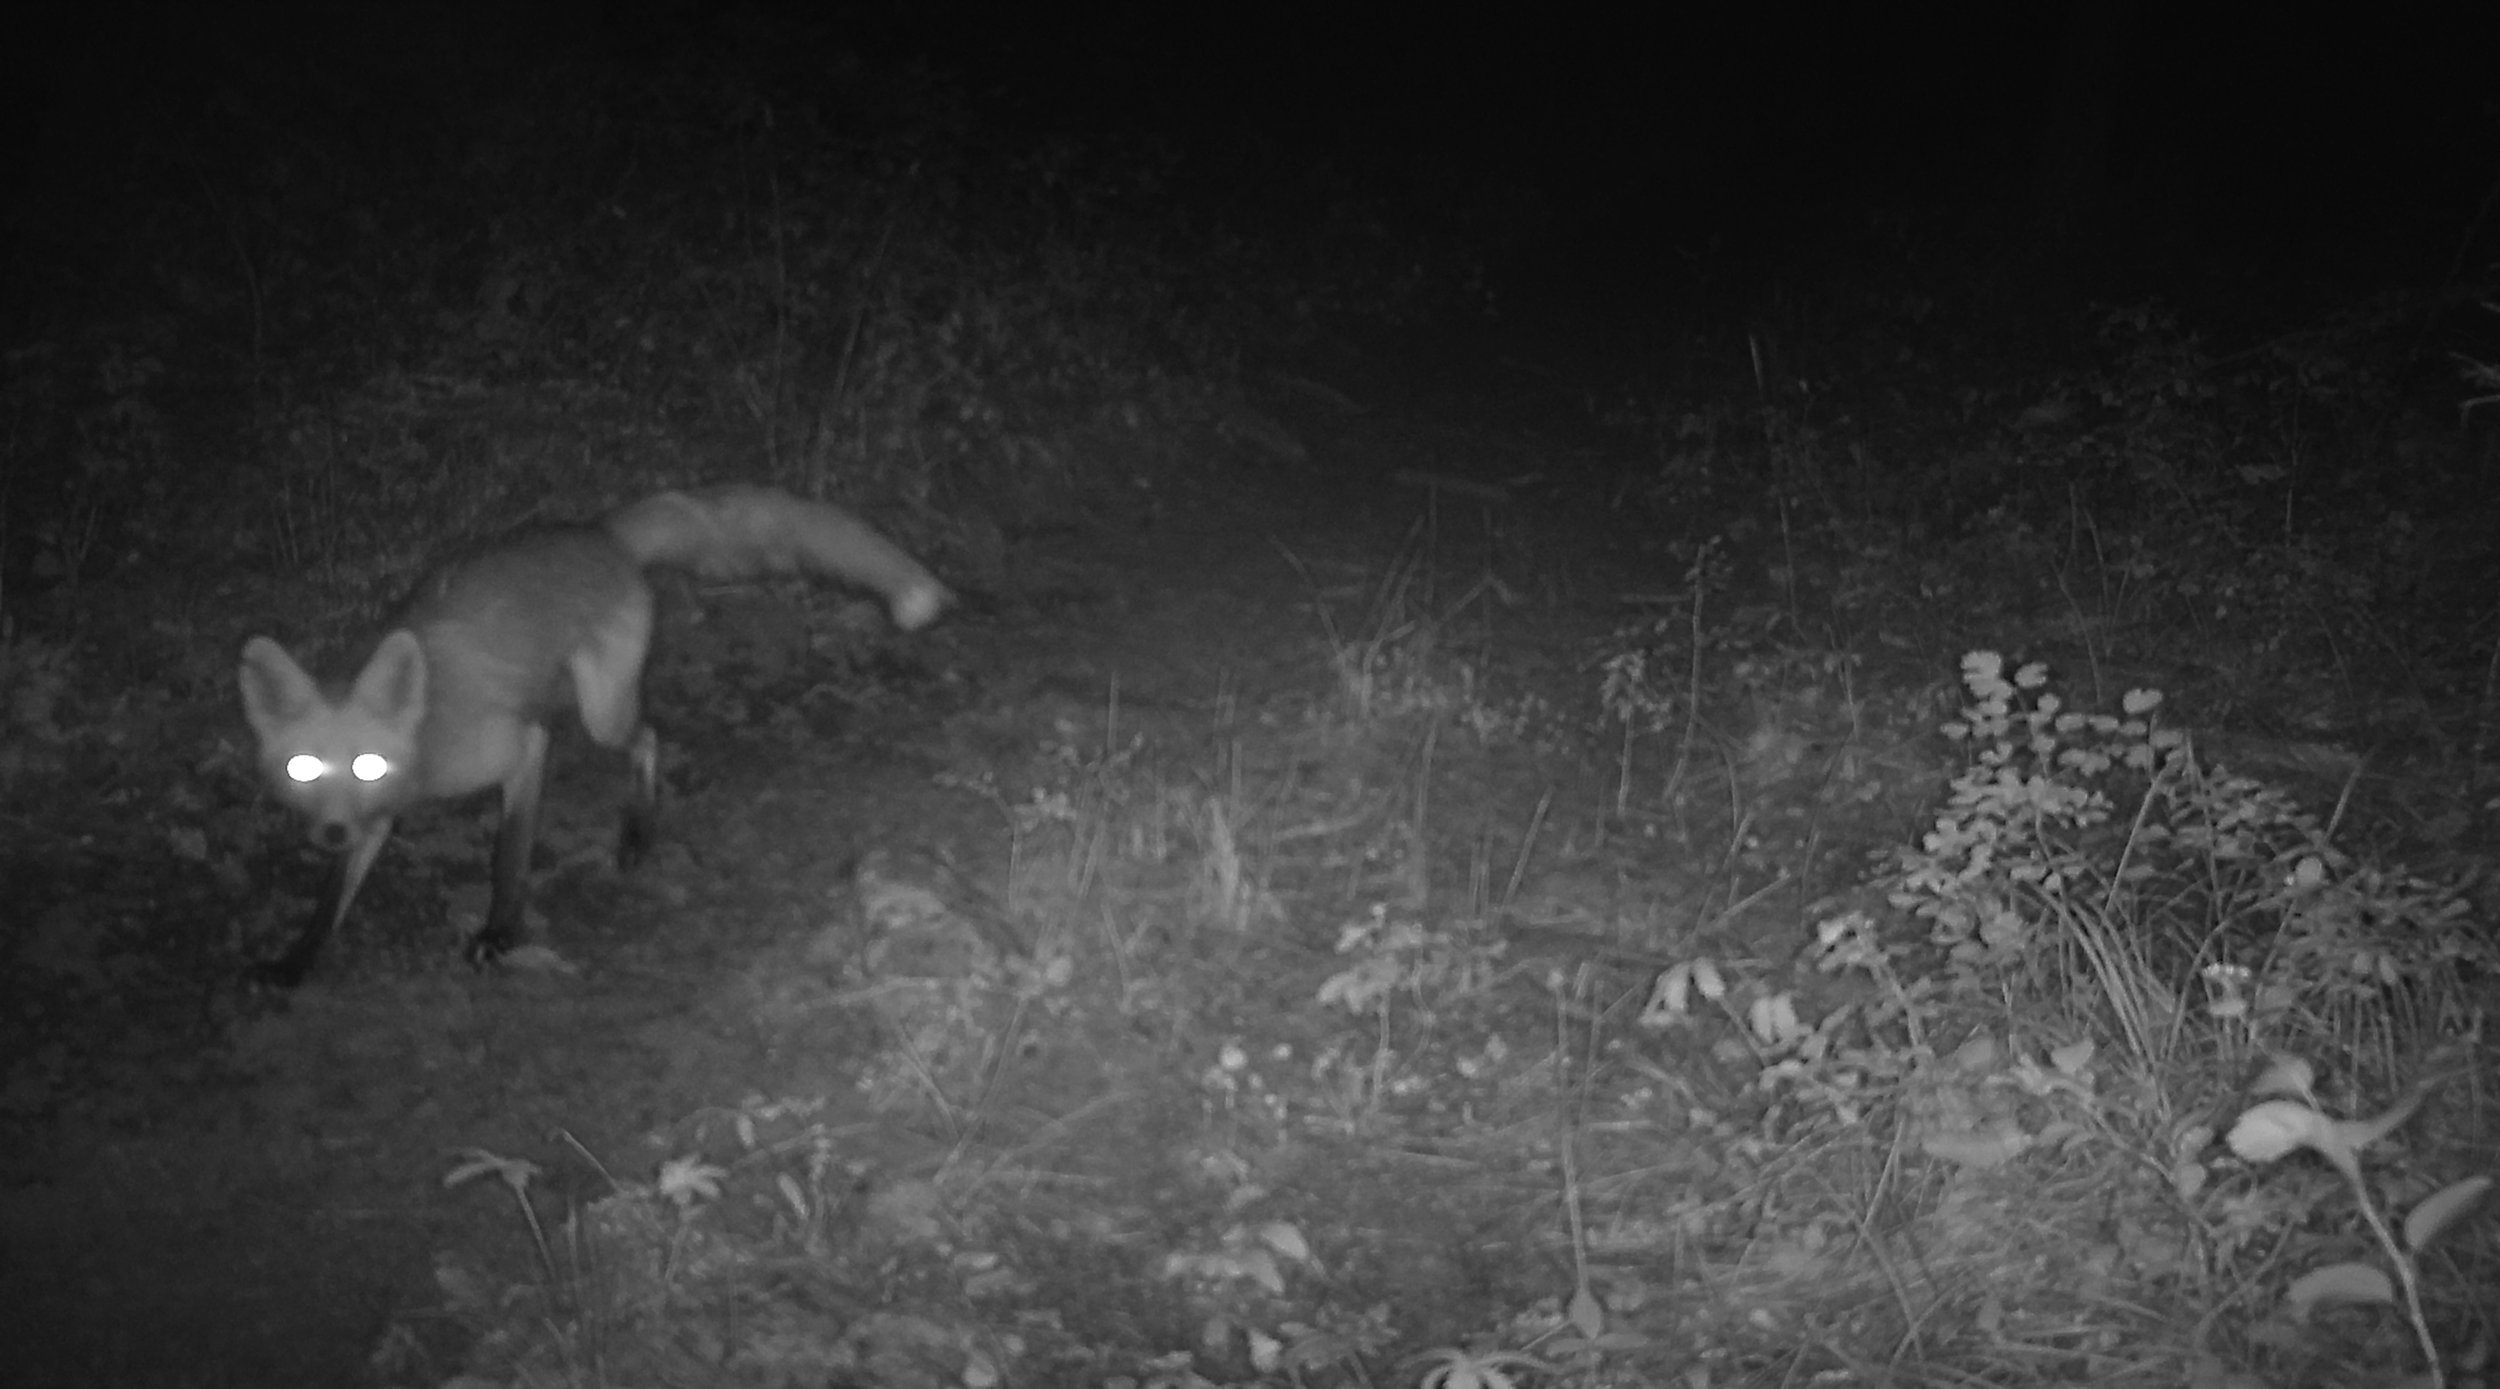 Fox that was startled by the trail camera